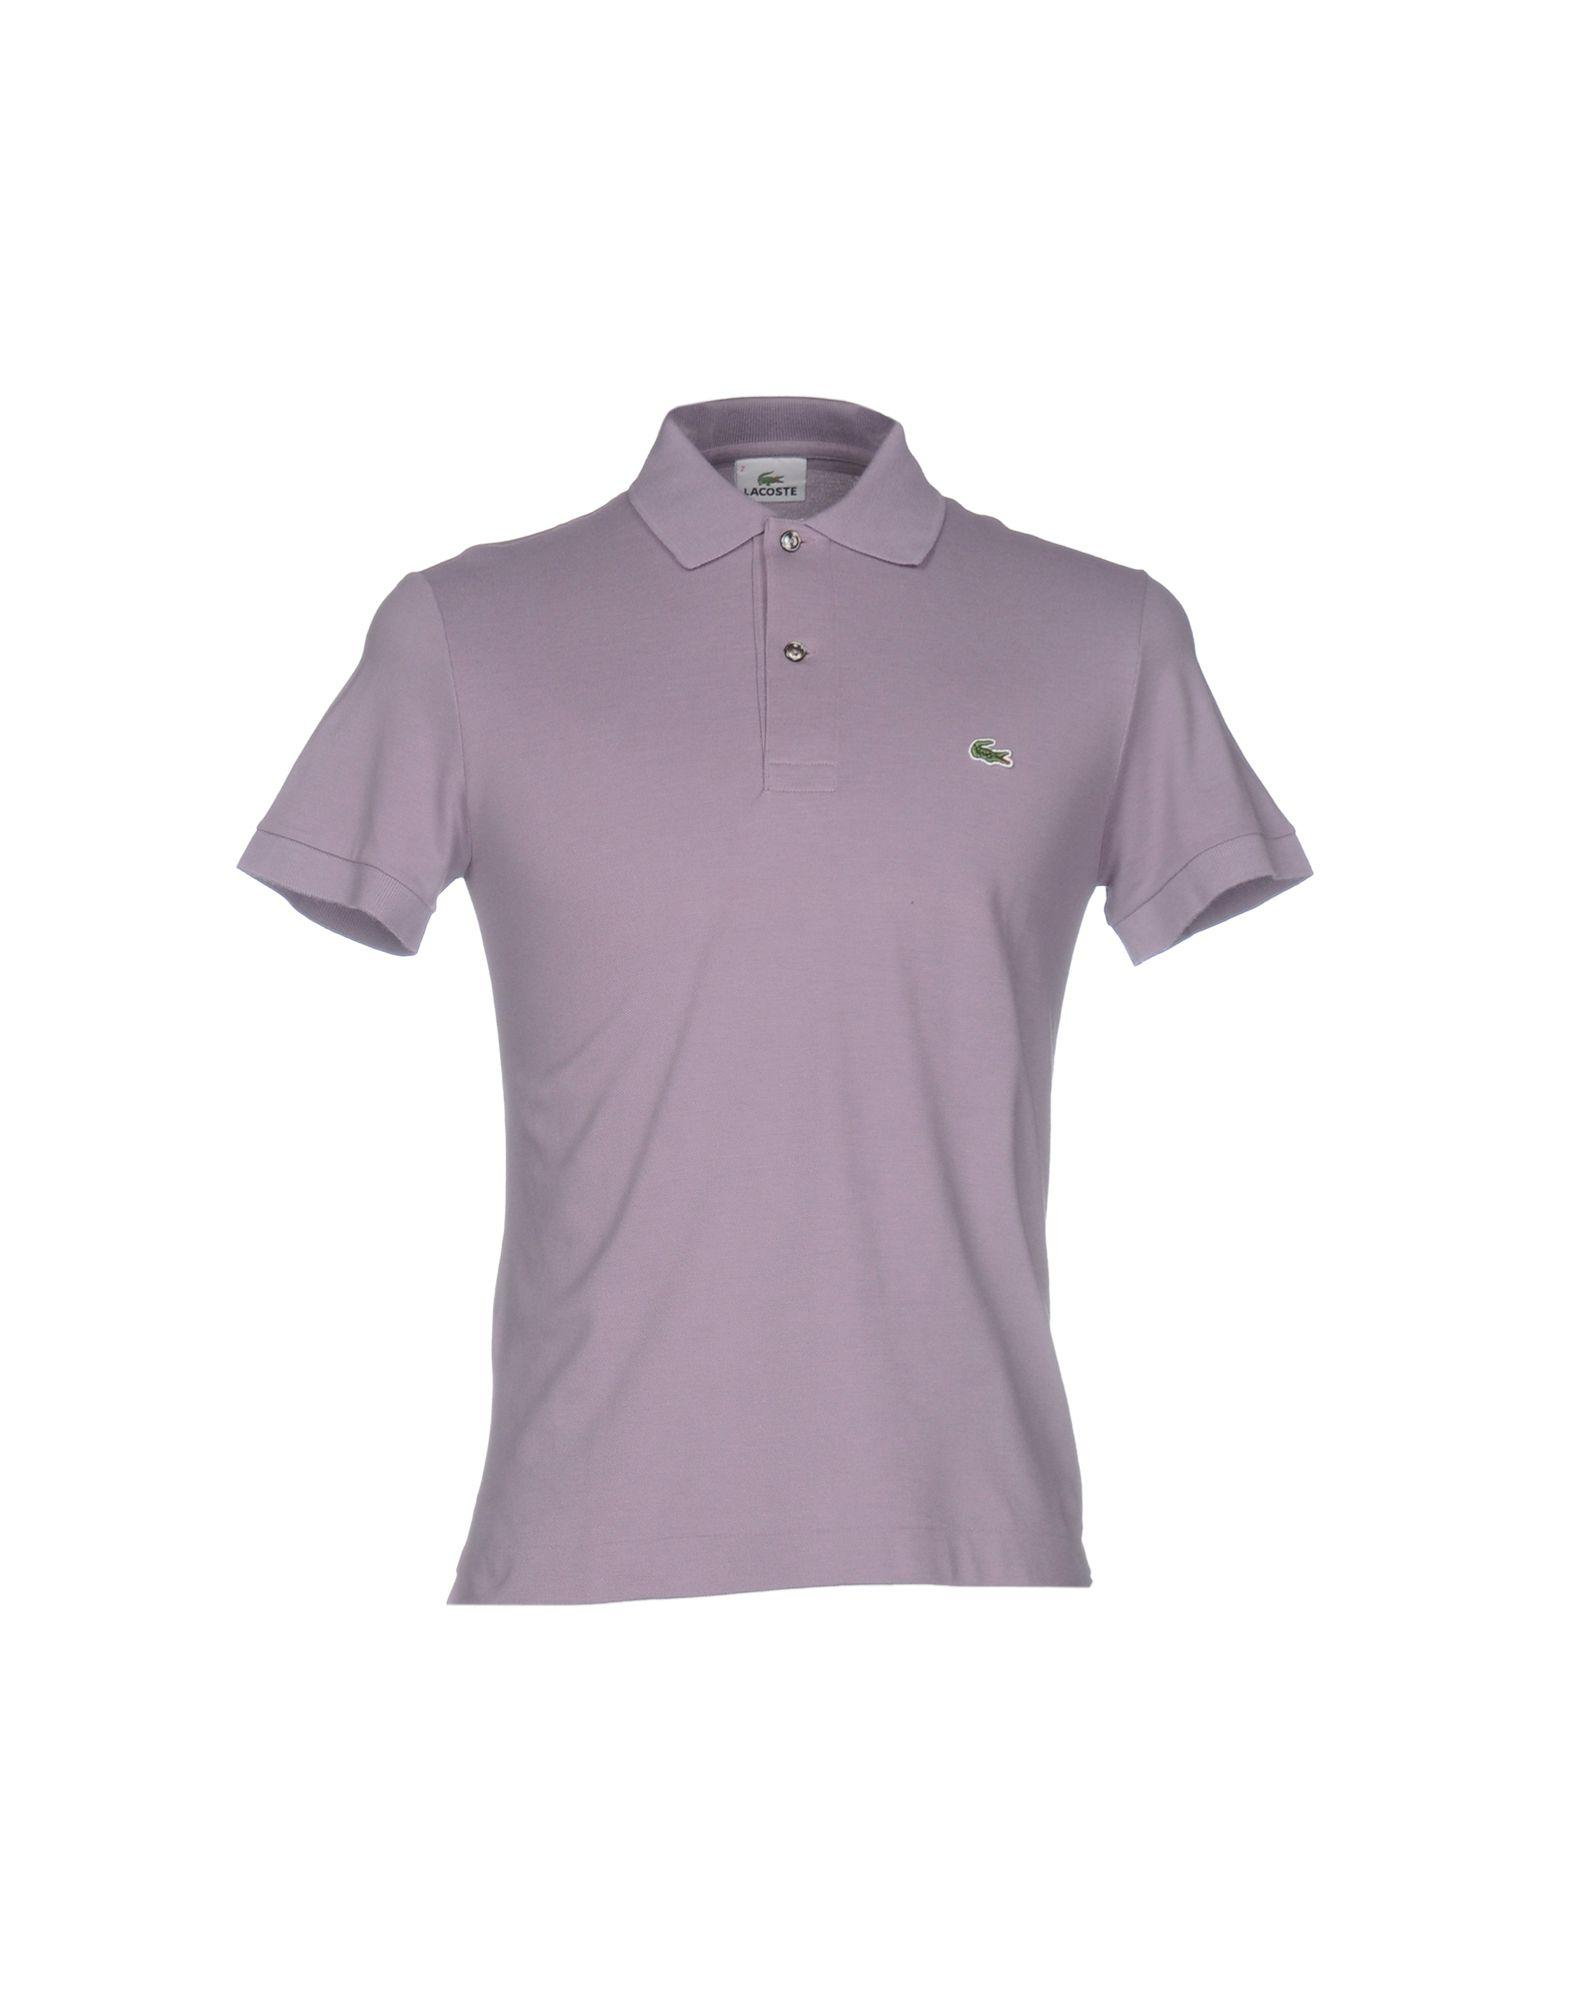 Lyst lacoste polo shirt in purple for men for Lacoste poloshirt weiay